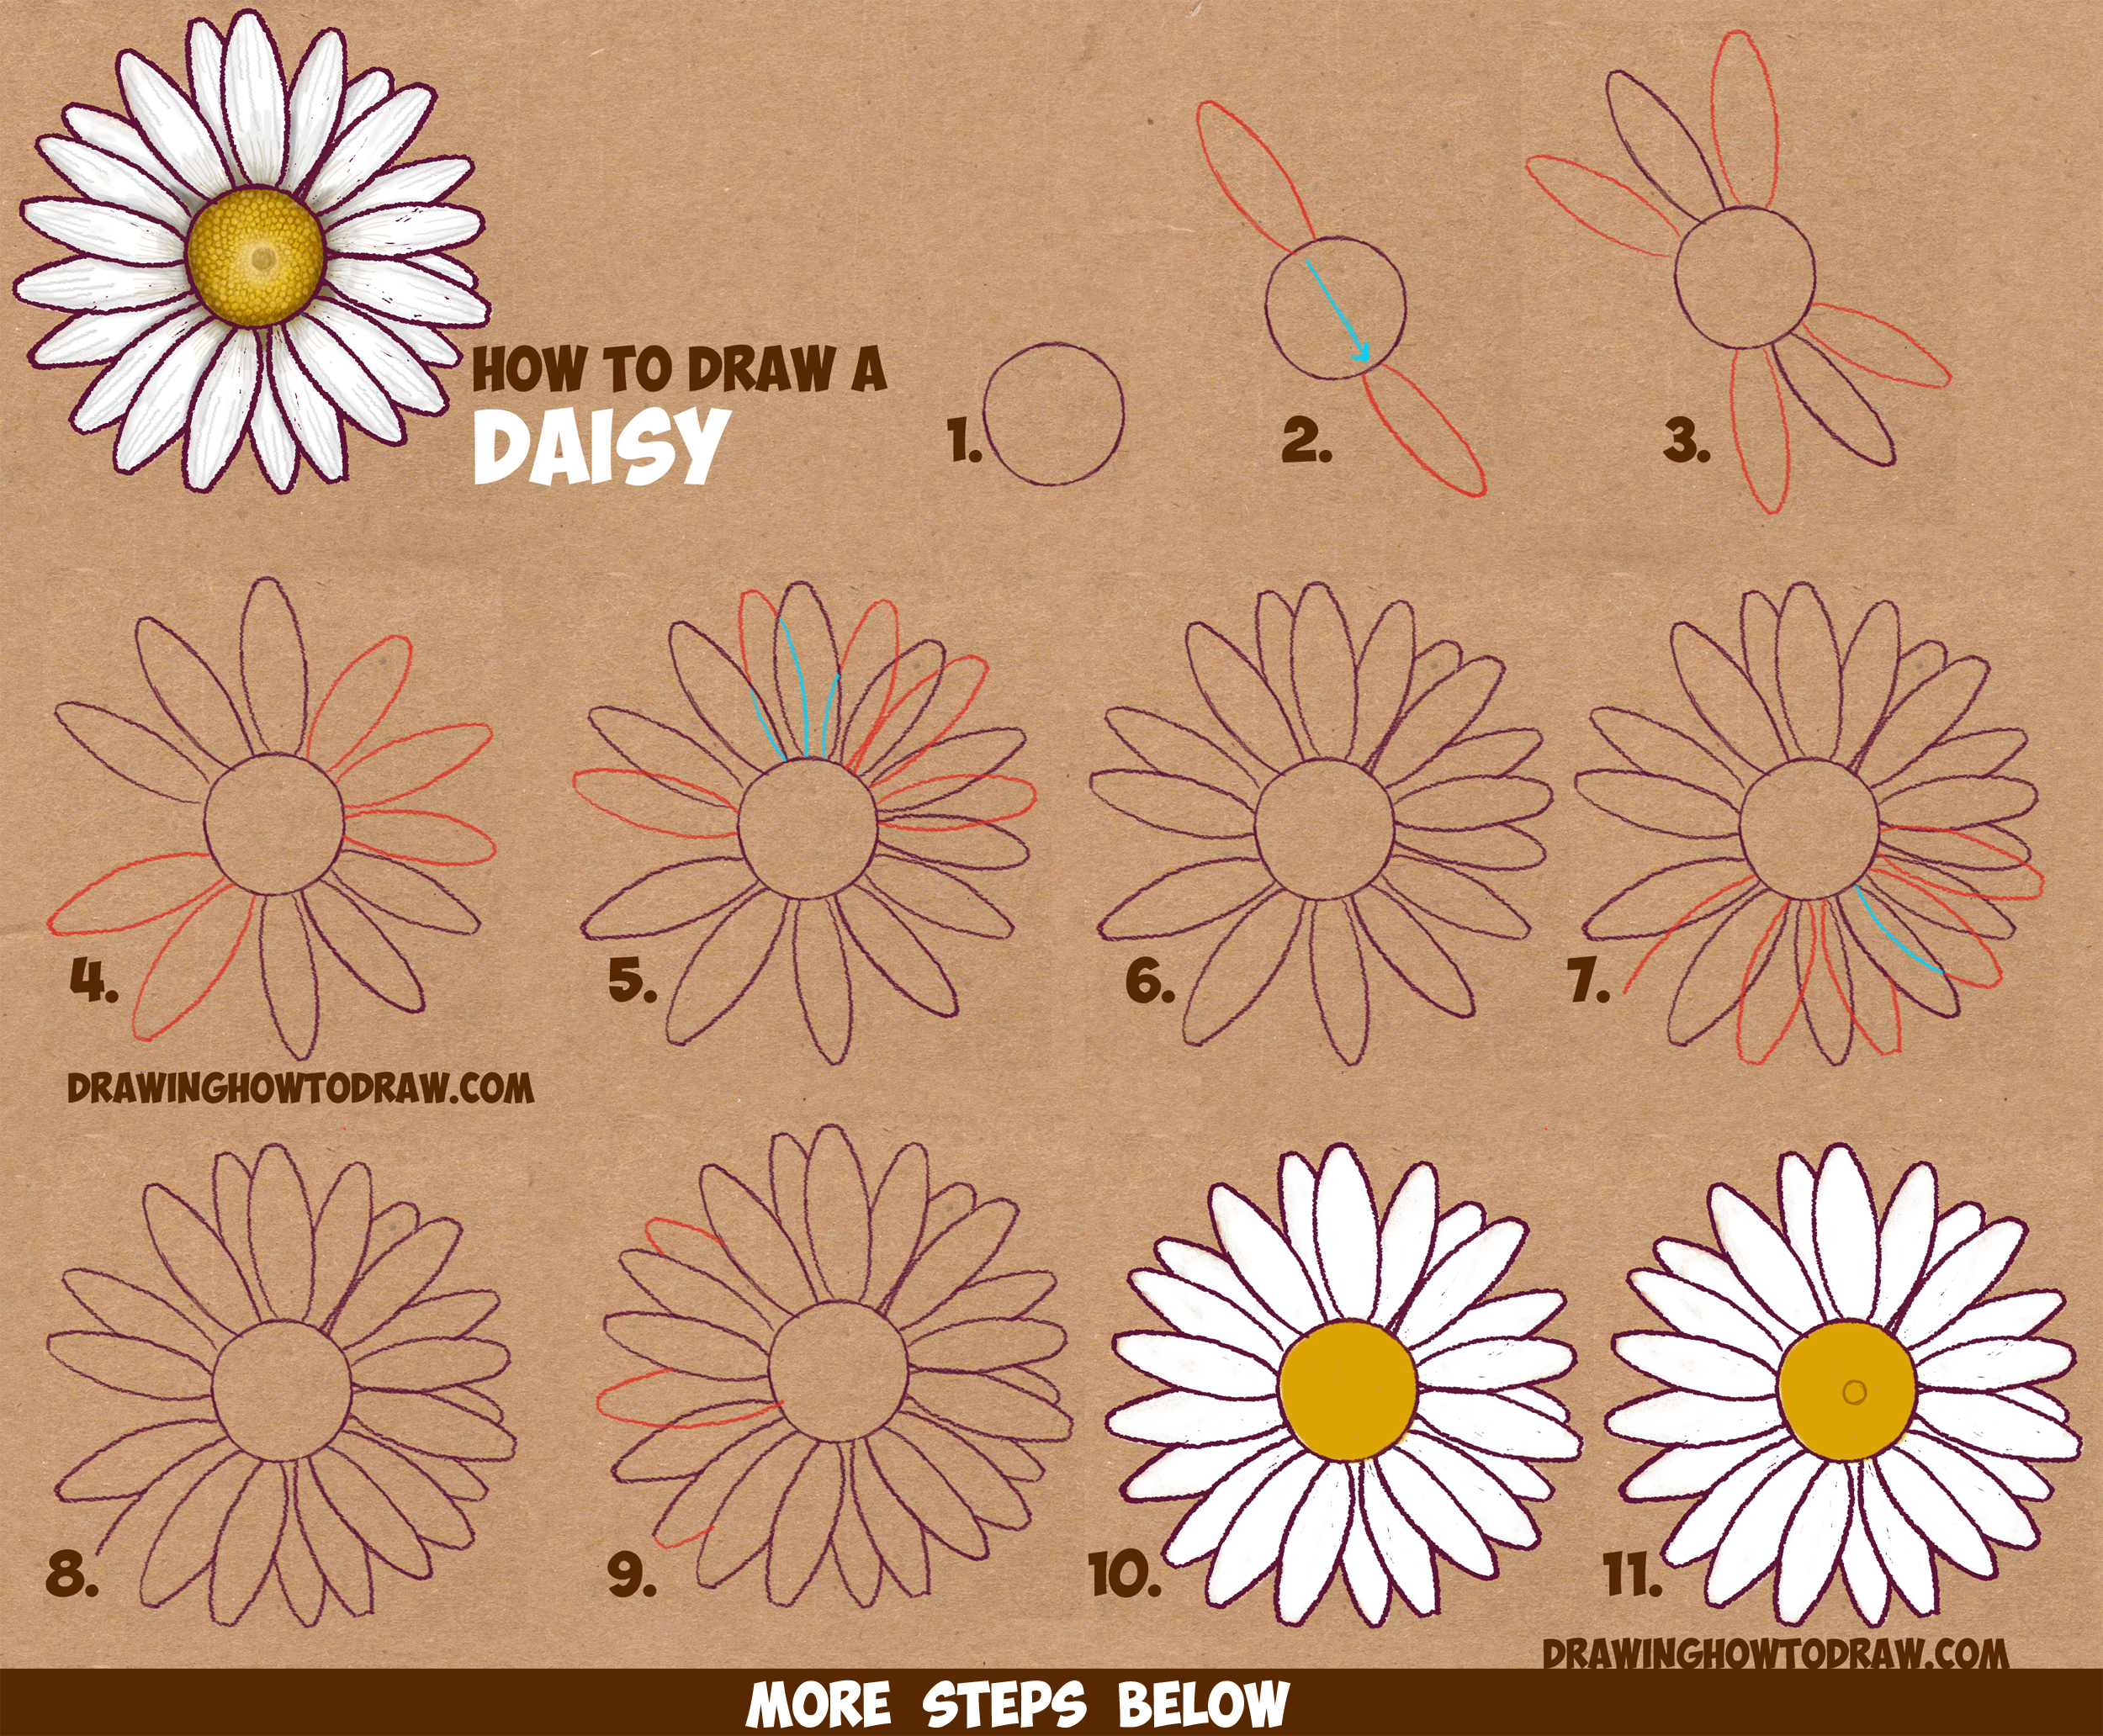 How to draw a daisy flower daisies in easy step by step for How to draw a basic flower